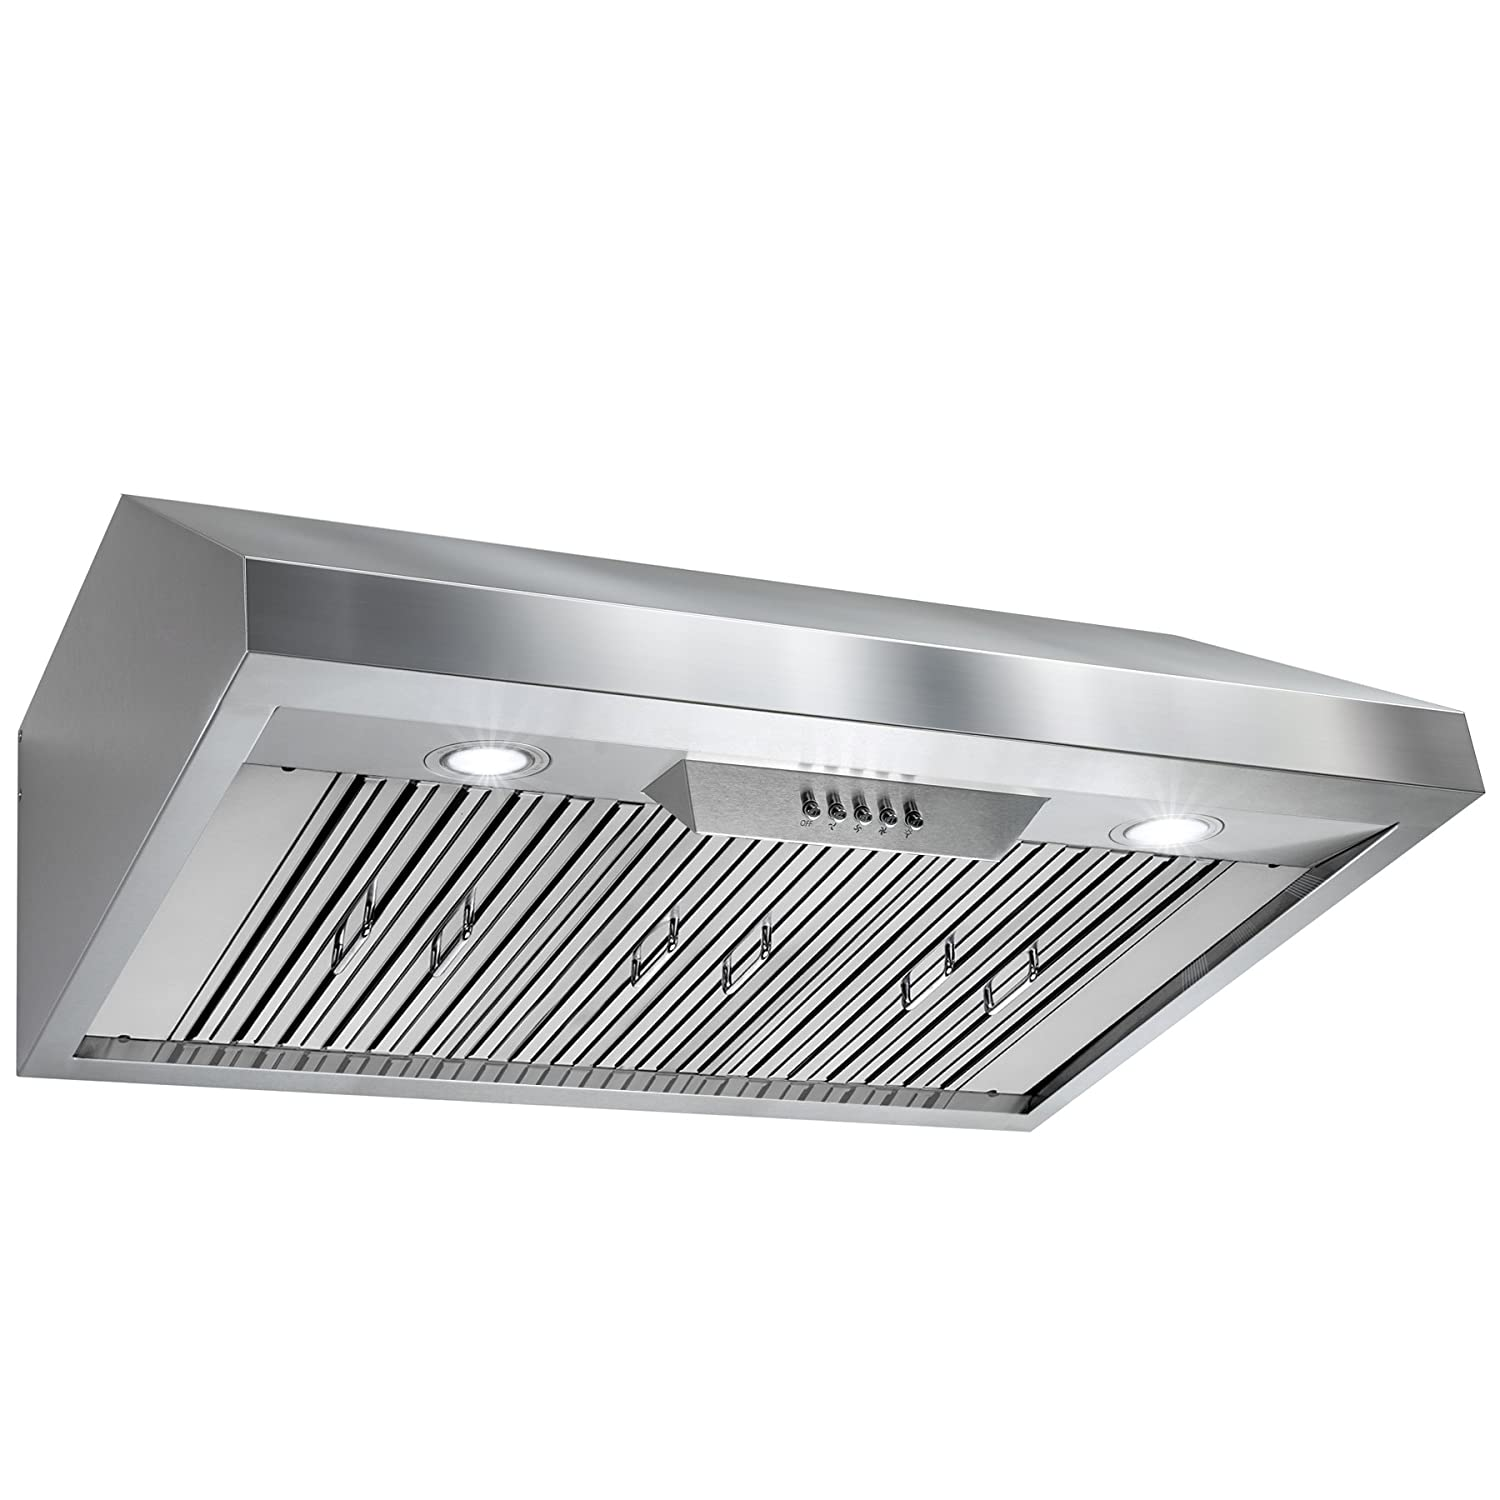 "Perfetto Kitchen and Bath 36"" Under Cabinet Stainless Steel Push Button Control Kitchen Cooking Fan Range Hood"